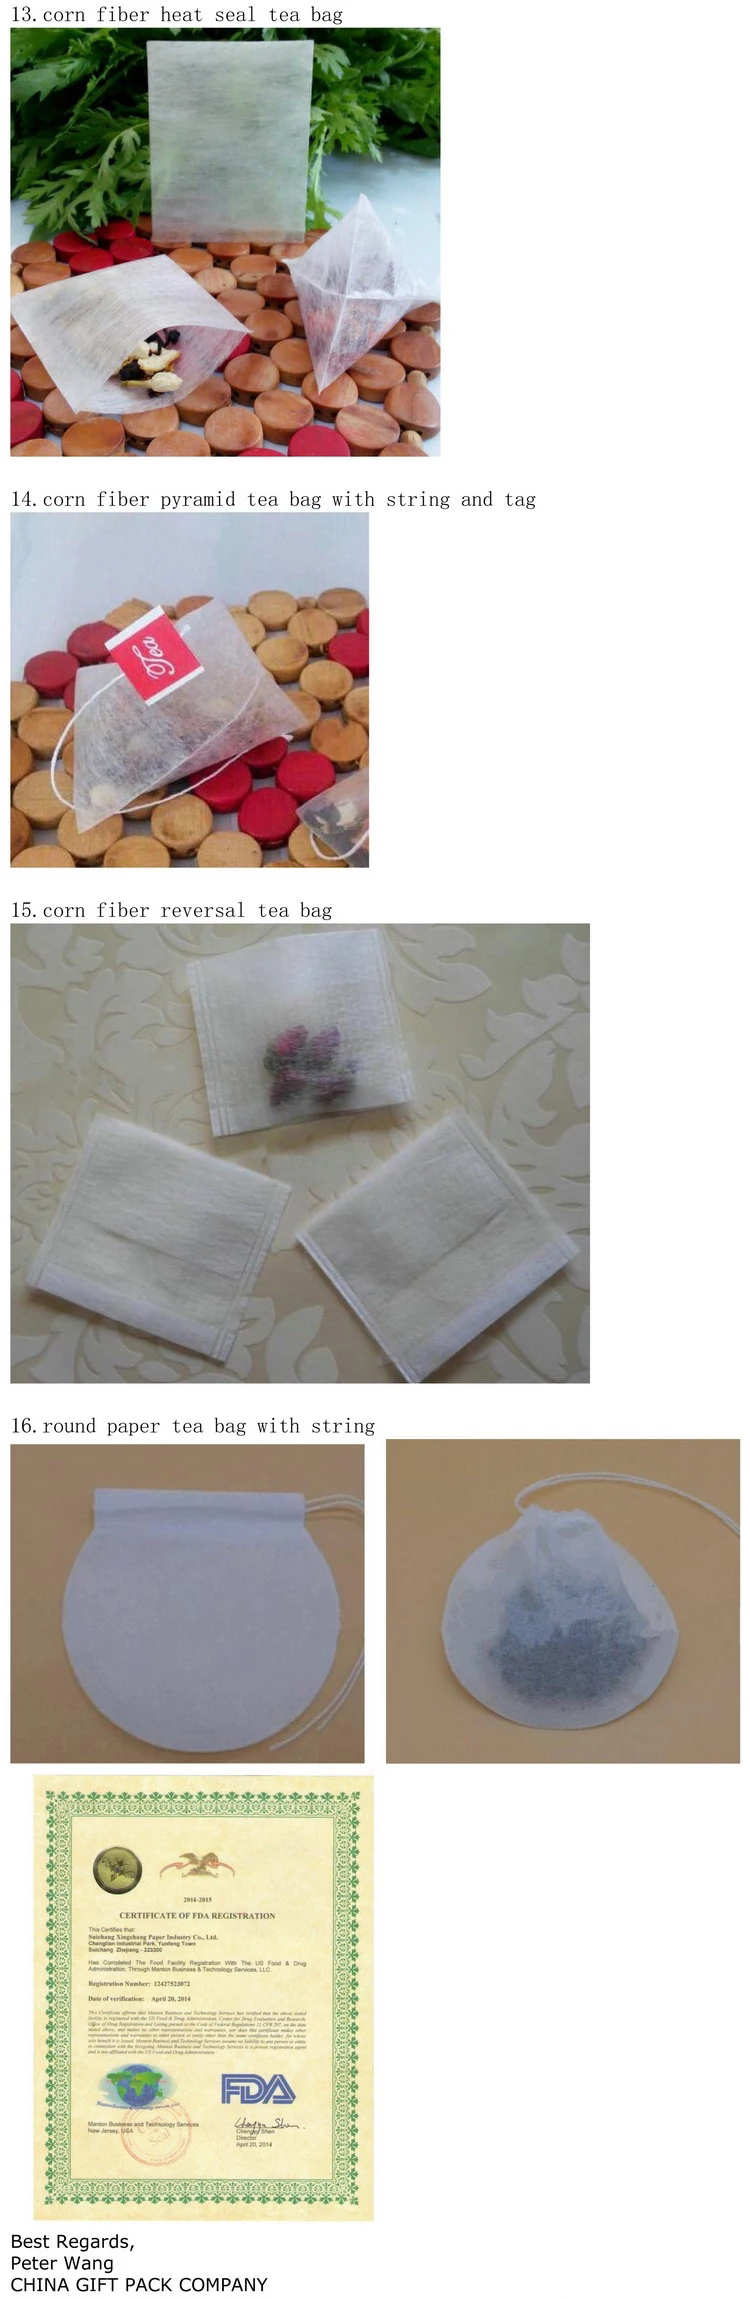 Biodegradable High Quality Empty Triangle Tea Bag Tea Filter Bag With String